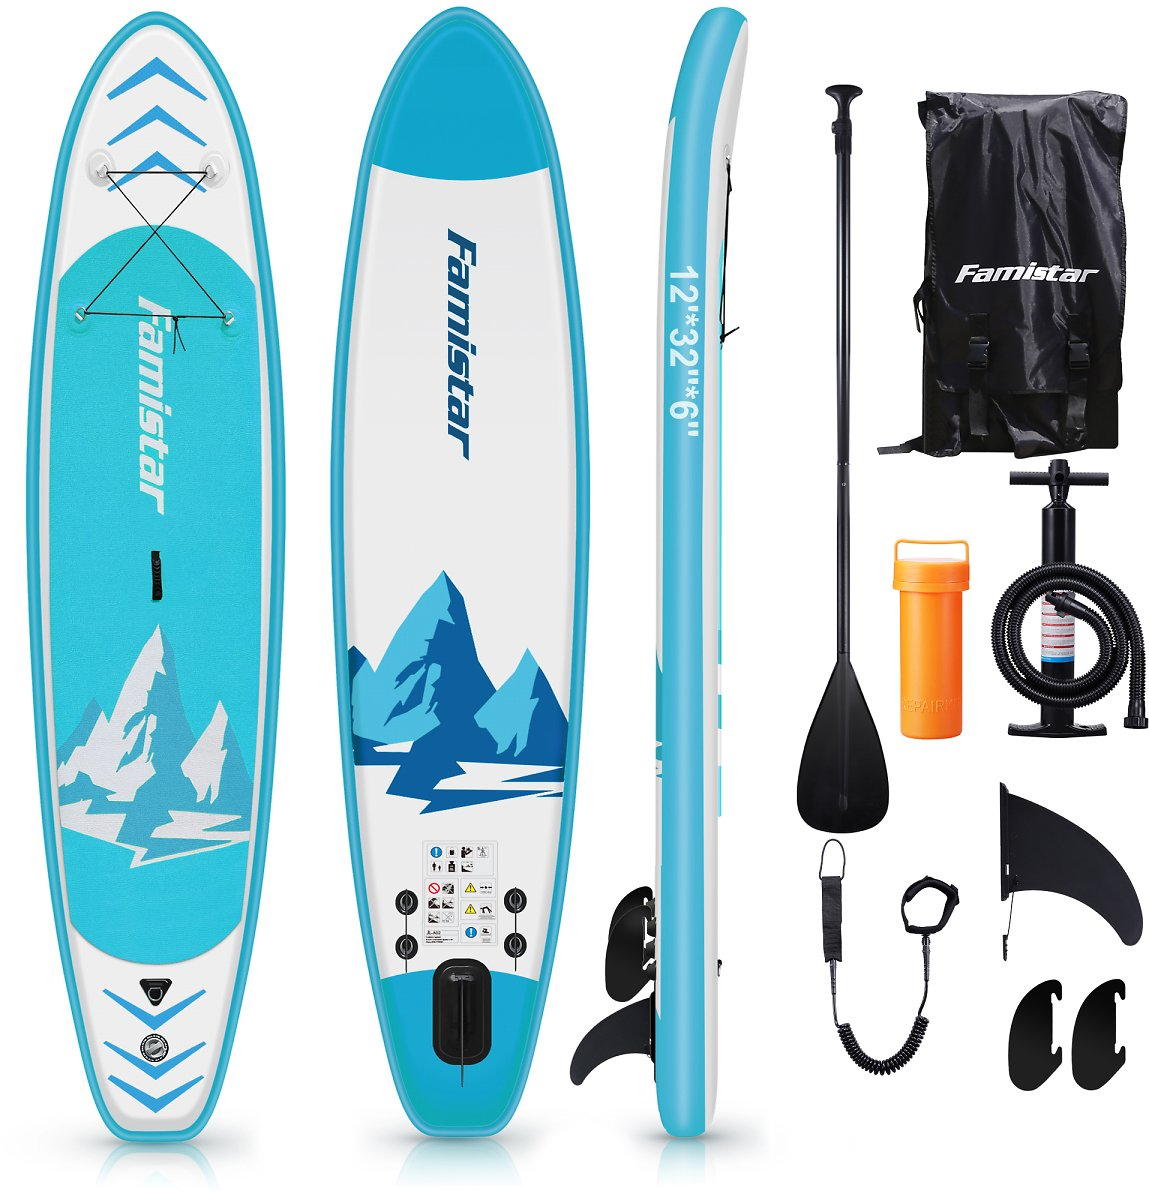 UNDER $500 12' Inflatable Paddle Board SUP, 3 Fins, Paddle, Pump & Backpack, 3 size + 3 colors available----38%OFF